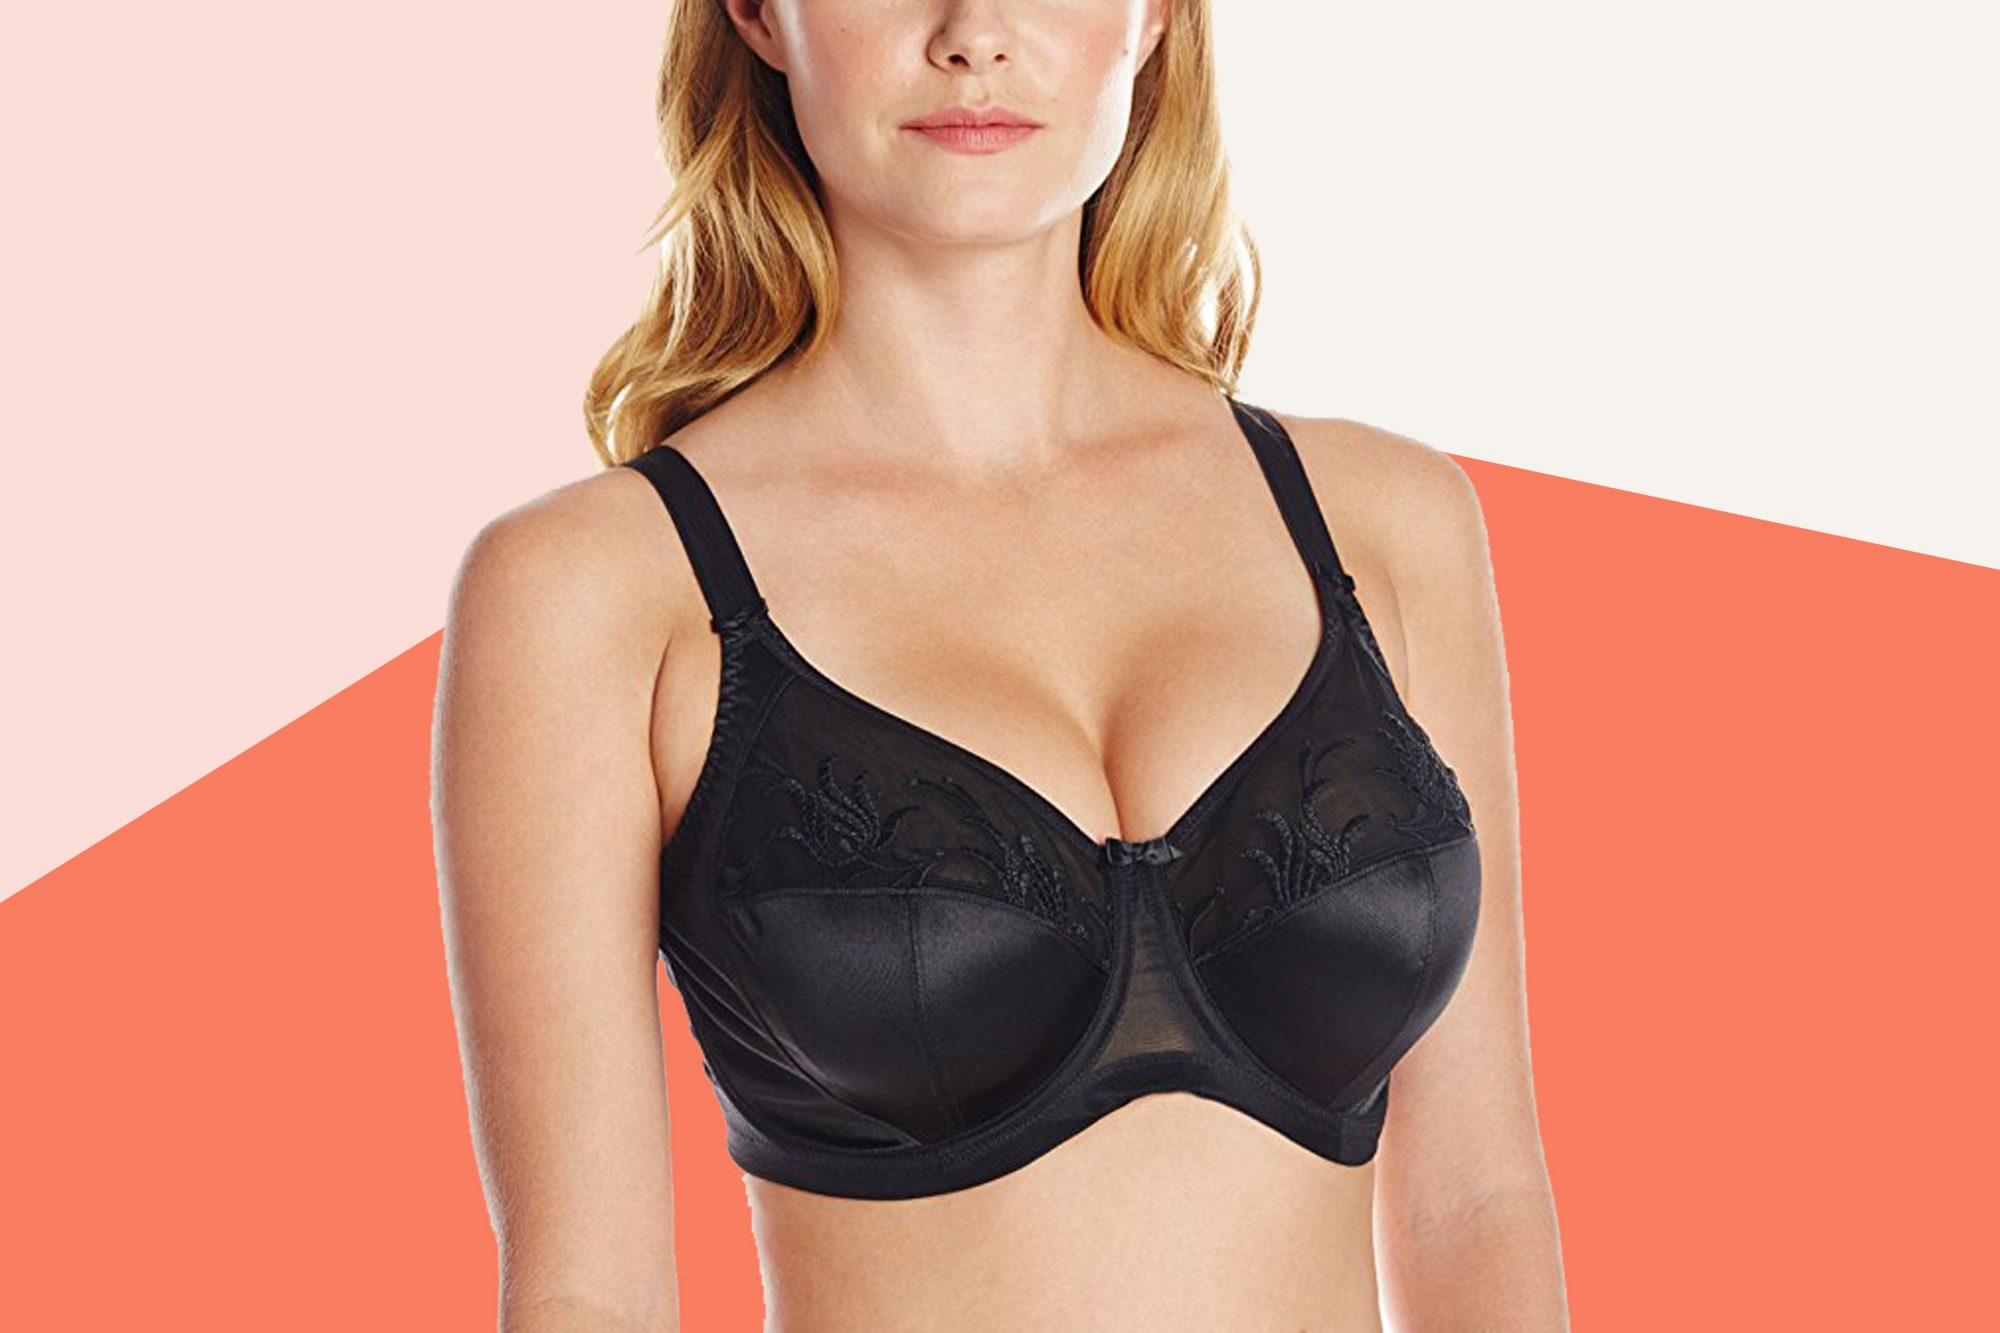 ca35d6e69 Best Bras for Large Breast Shapes